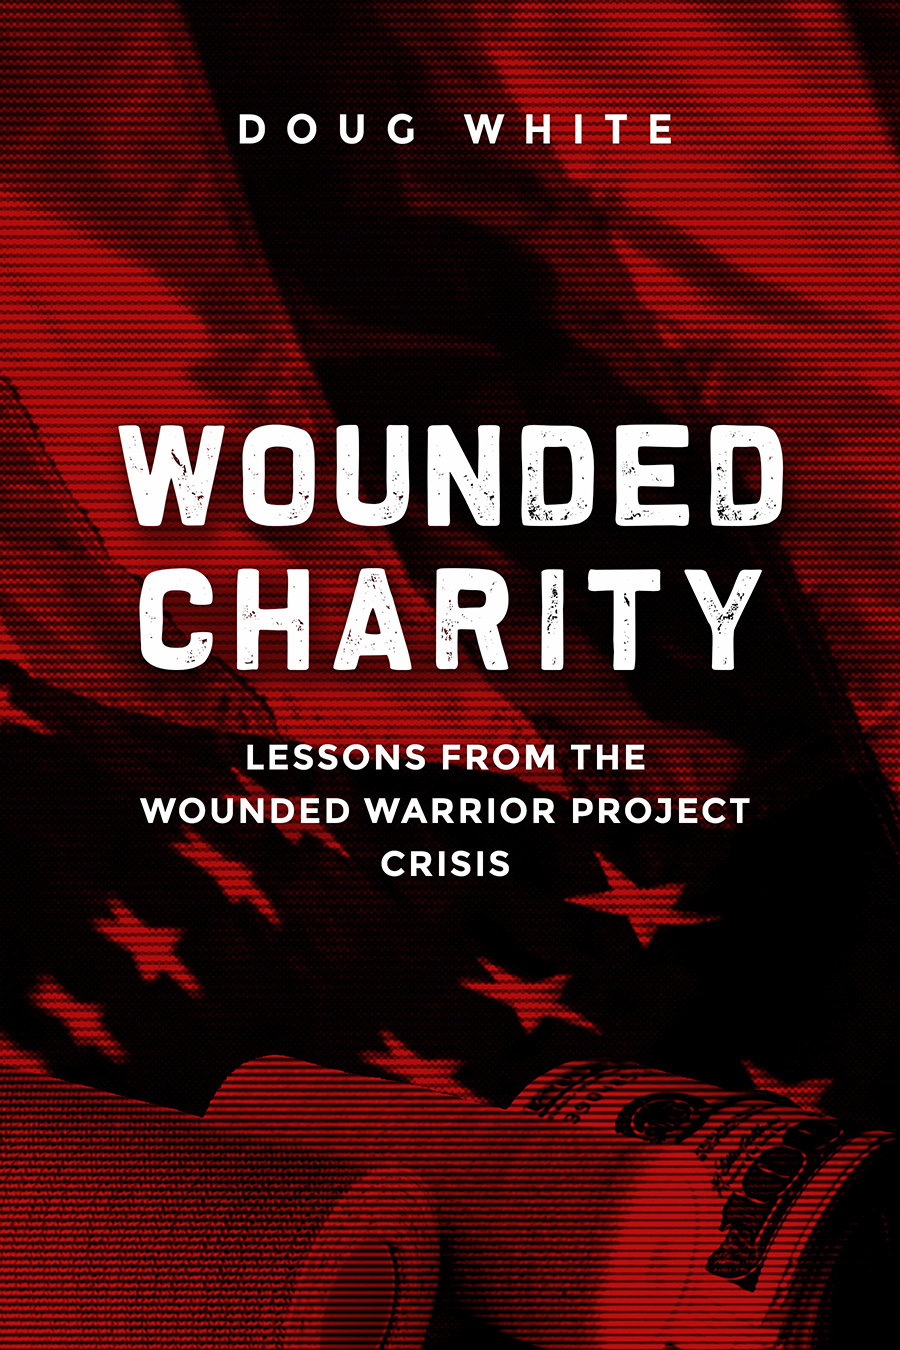 Wounded Charity